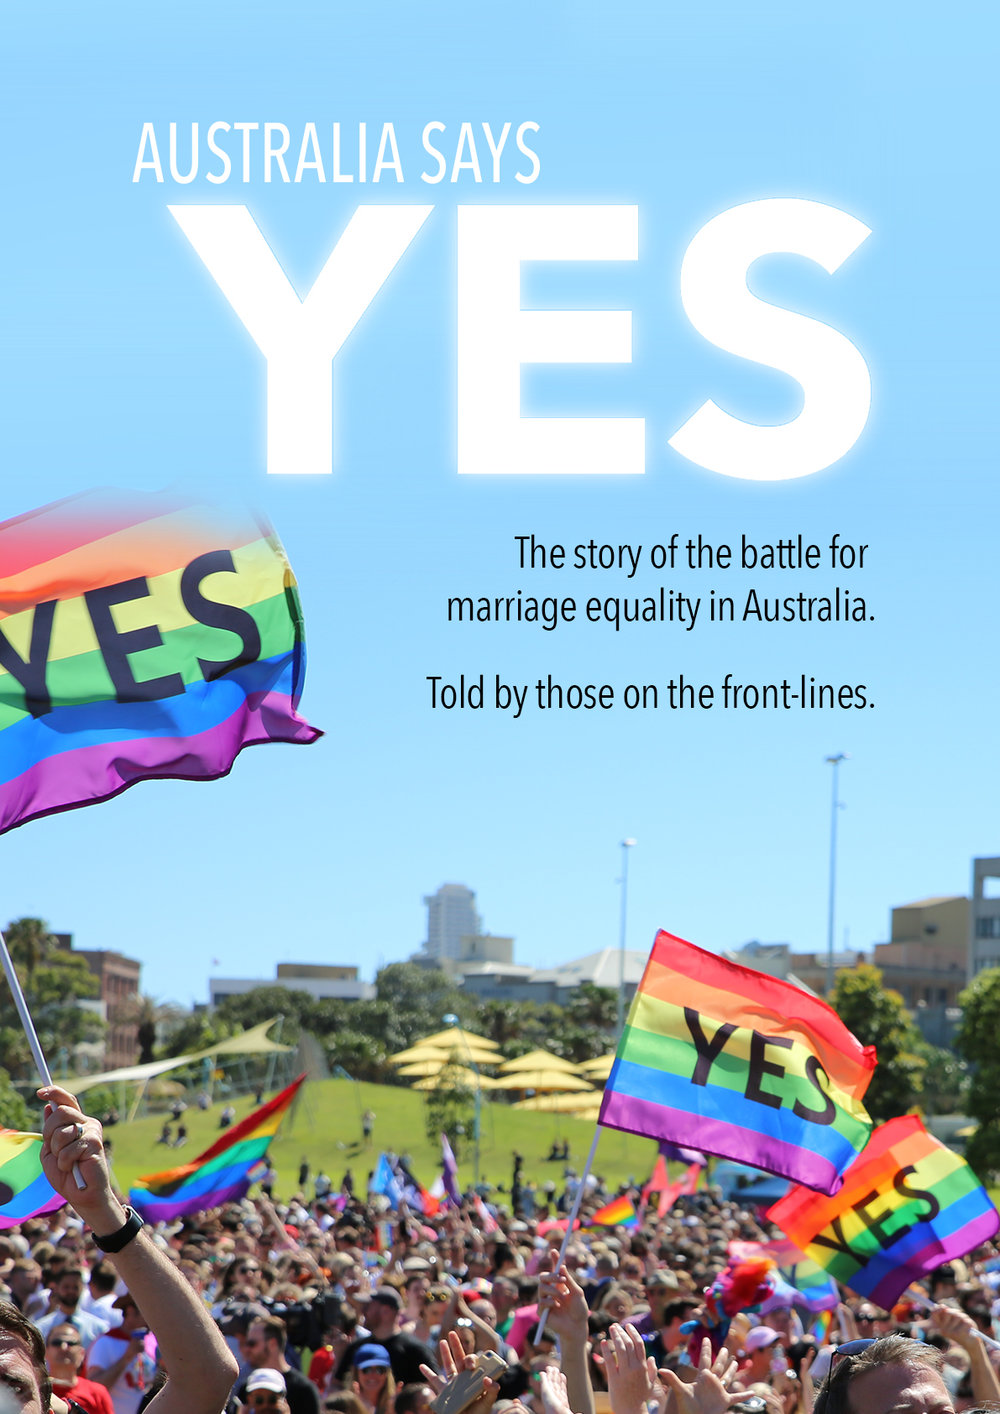 Check out Kirk's doco on SBS on Thursday at 7:30pm.